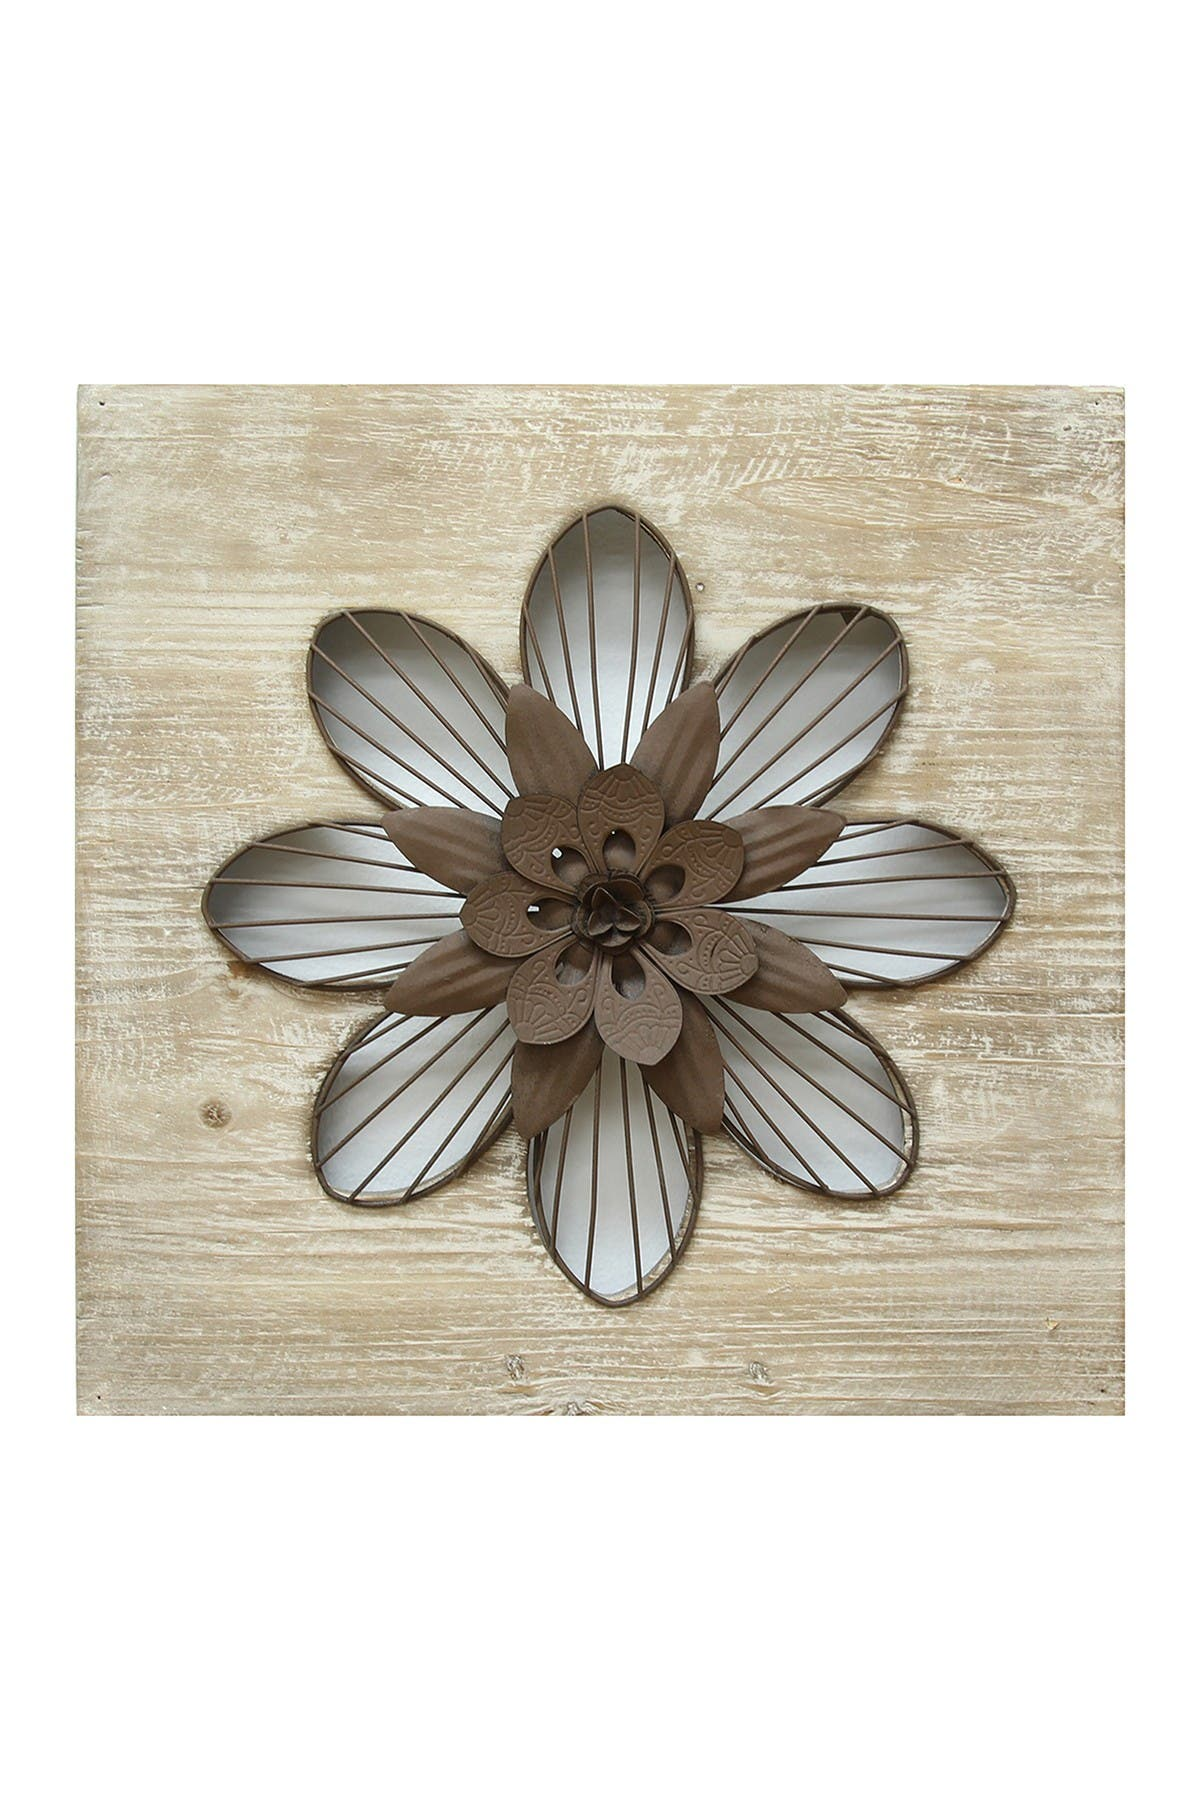 Stratton Home Natural Wood/Espresso Rustic Flower Wall Decor at Nordstrom Rack